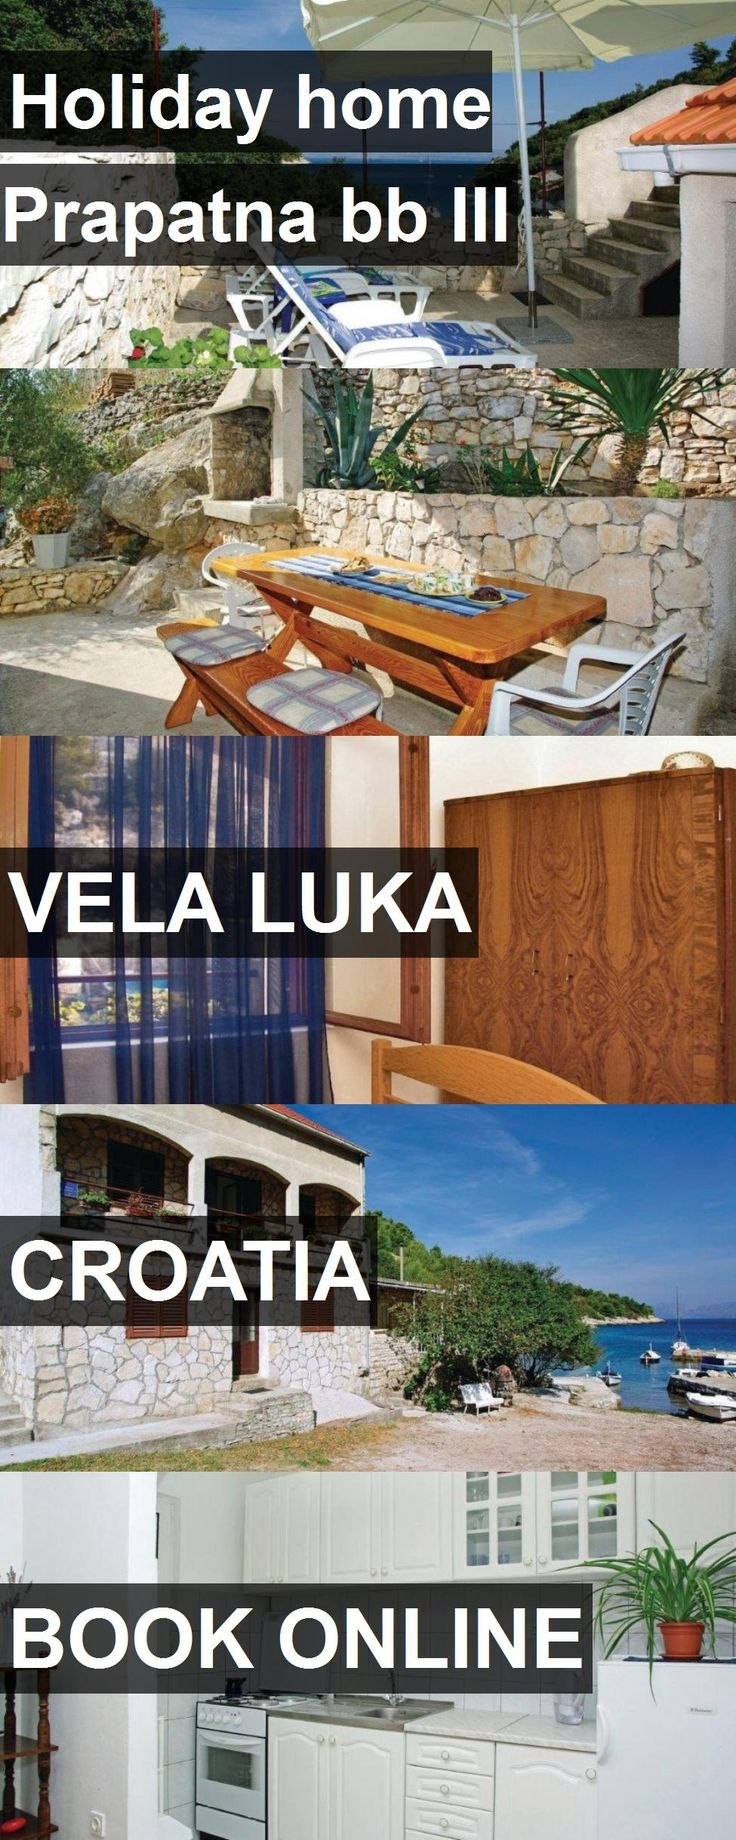 Hotel Holiday home Prapatna bb III in Vela Luka, Croatia. For more information, photos, reviews and best prices please follow the link. #Croatia #VelaLuka #travel #vacation #hotel